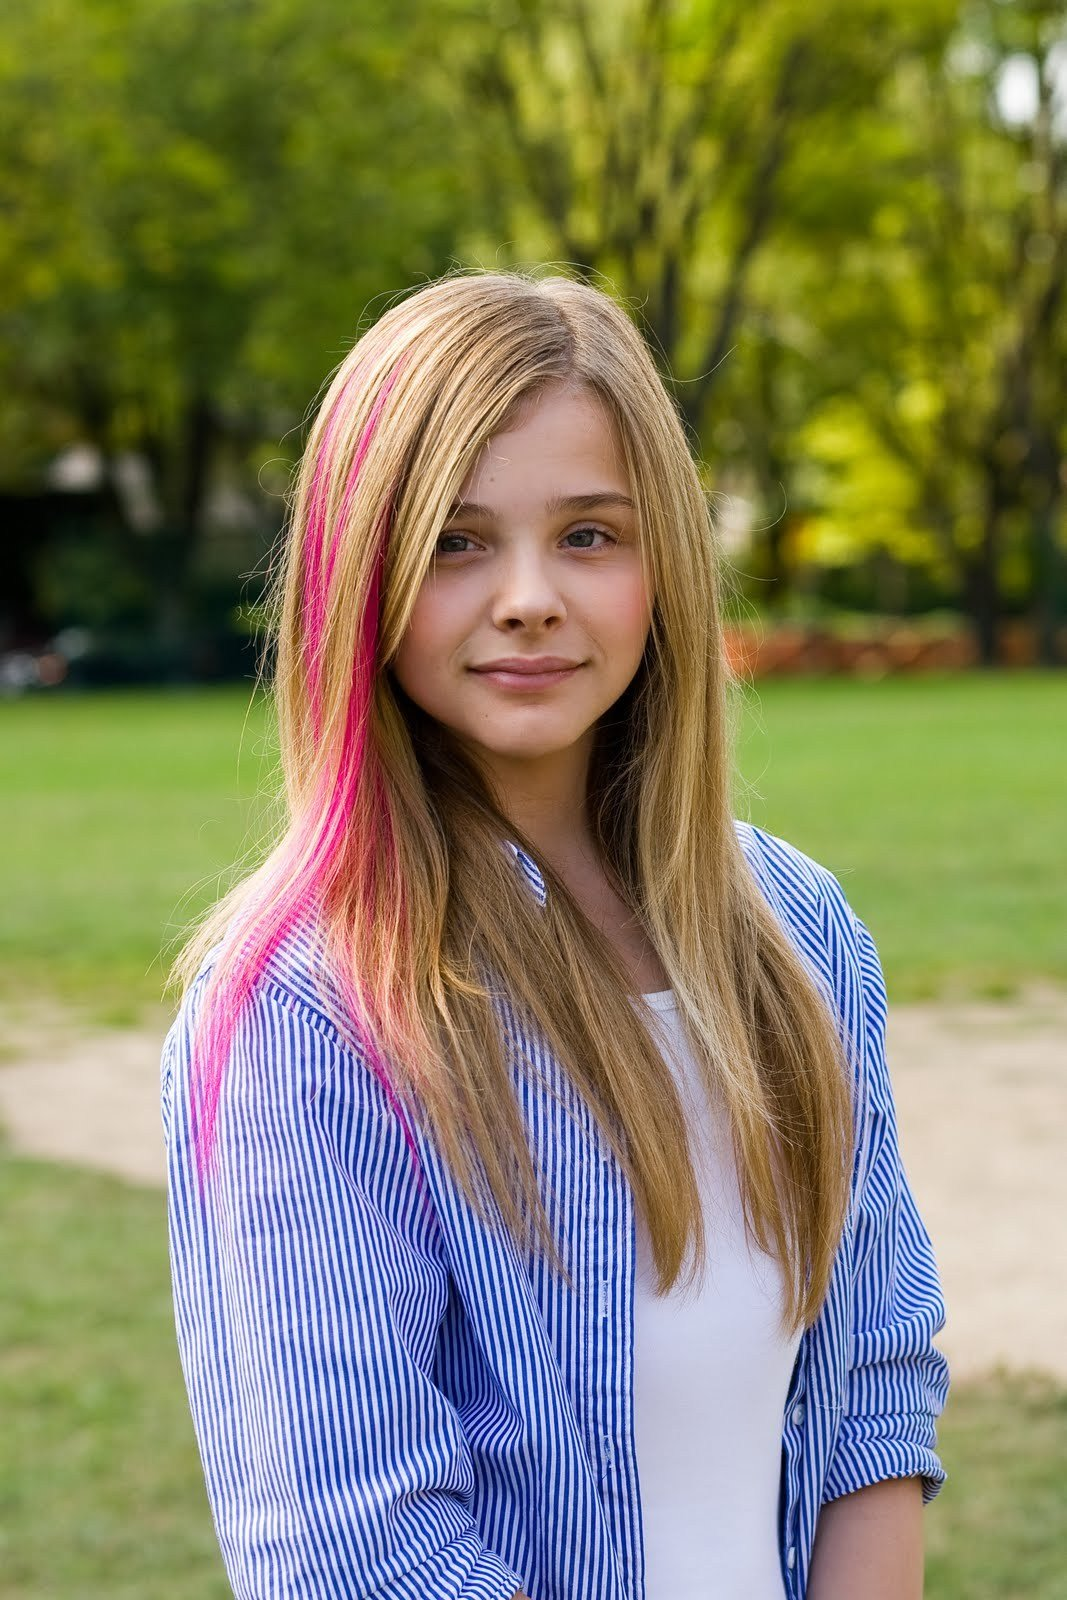 New Top 10 Hairstyles For 14 Year Olds 2017 Hair Style And Ideas With Pictures Original 1024 x 768